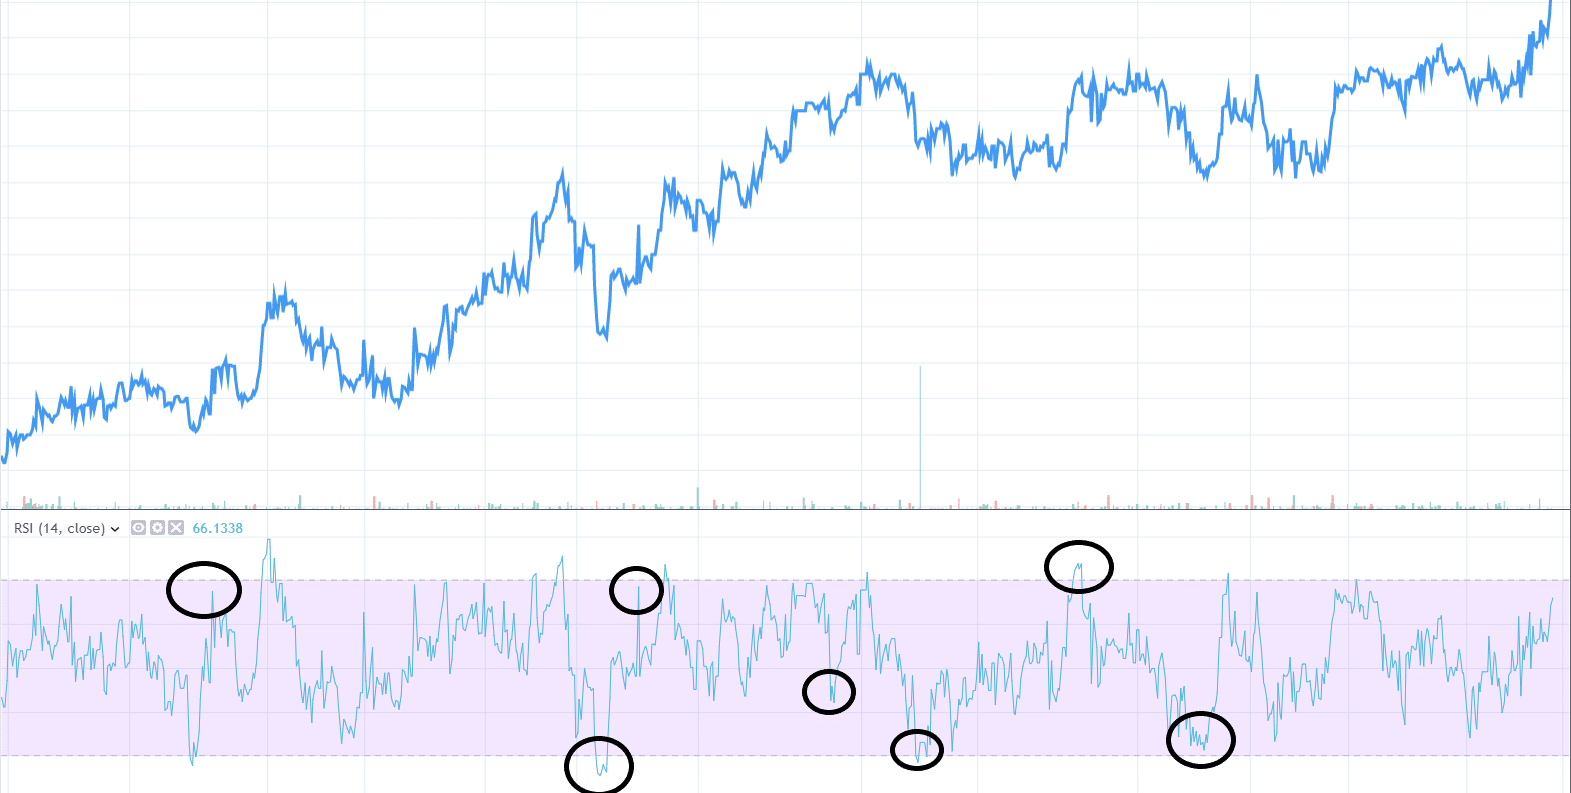 RSI - All You Need To Know about RSI - THE ROBUST TRADER